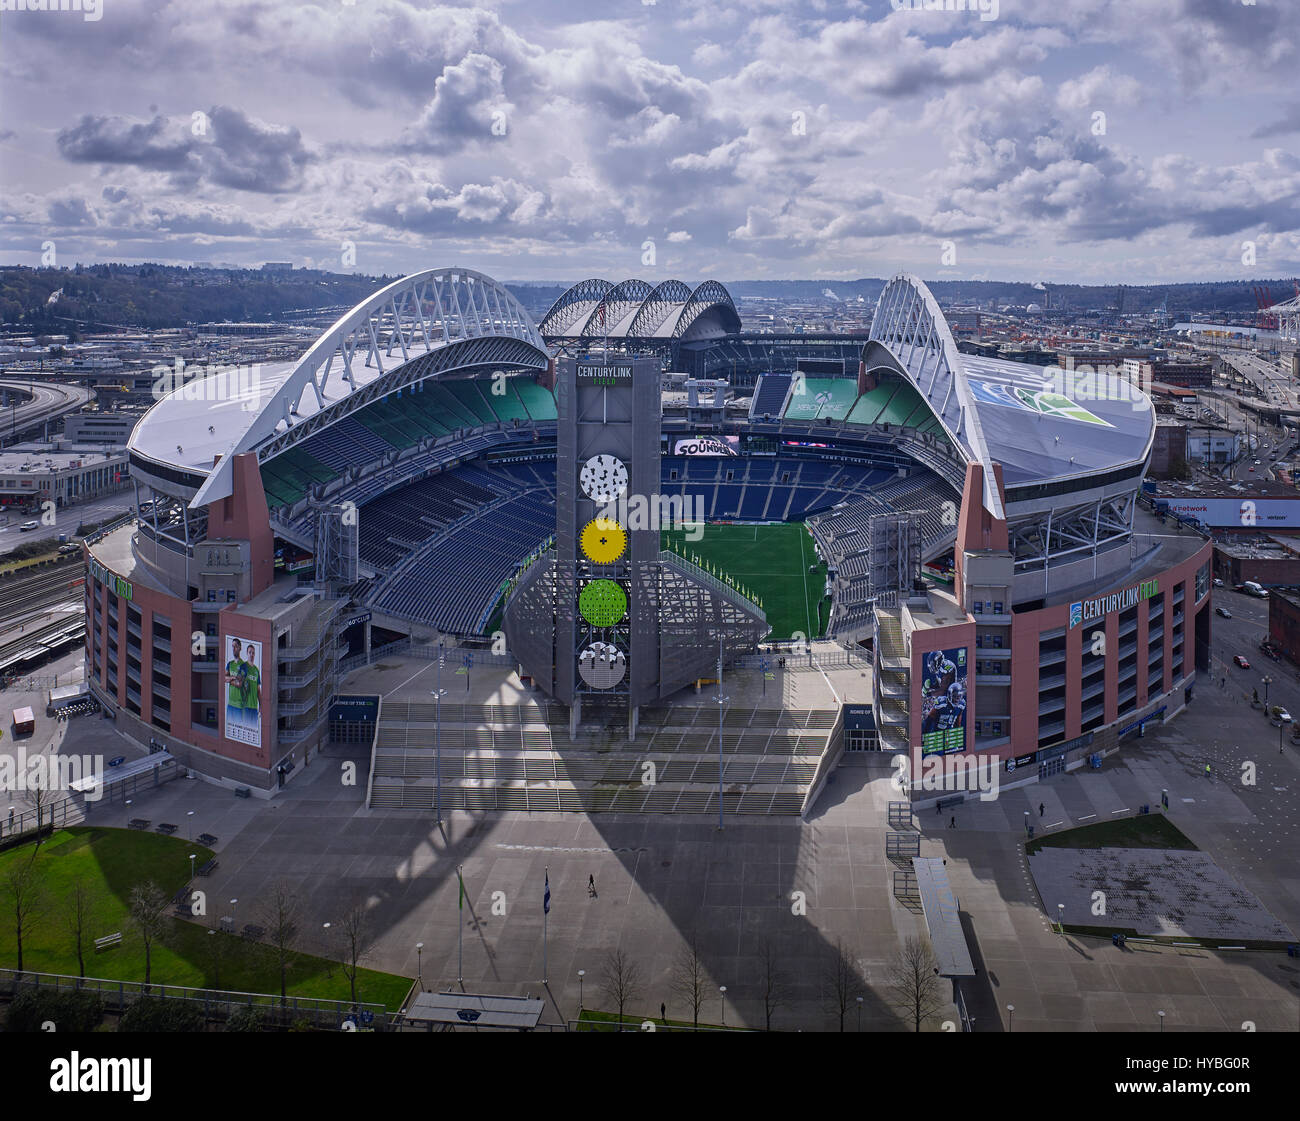 A view looking south at CenturyLink Field, home of the NFL Seattle Seahawks football team, in Seattle Washington. - Stock Image